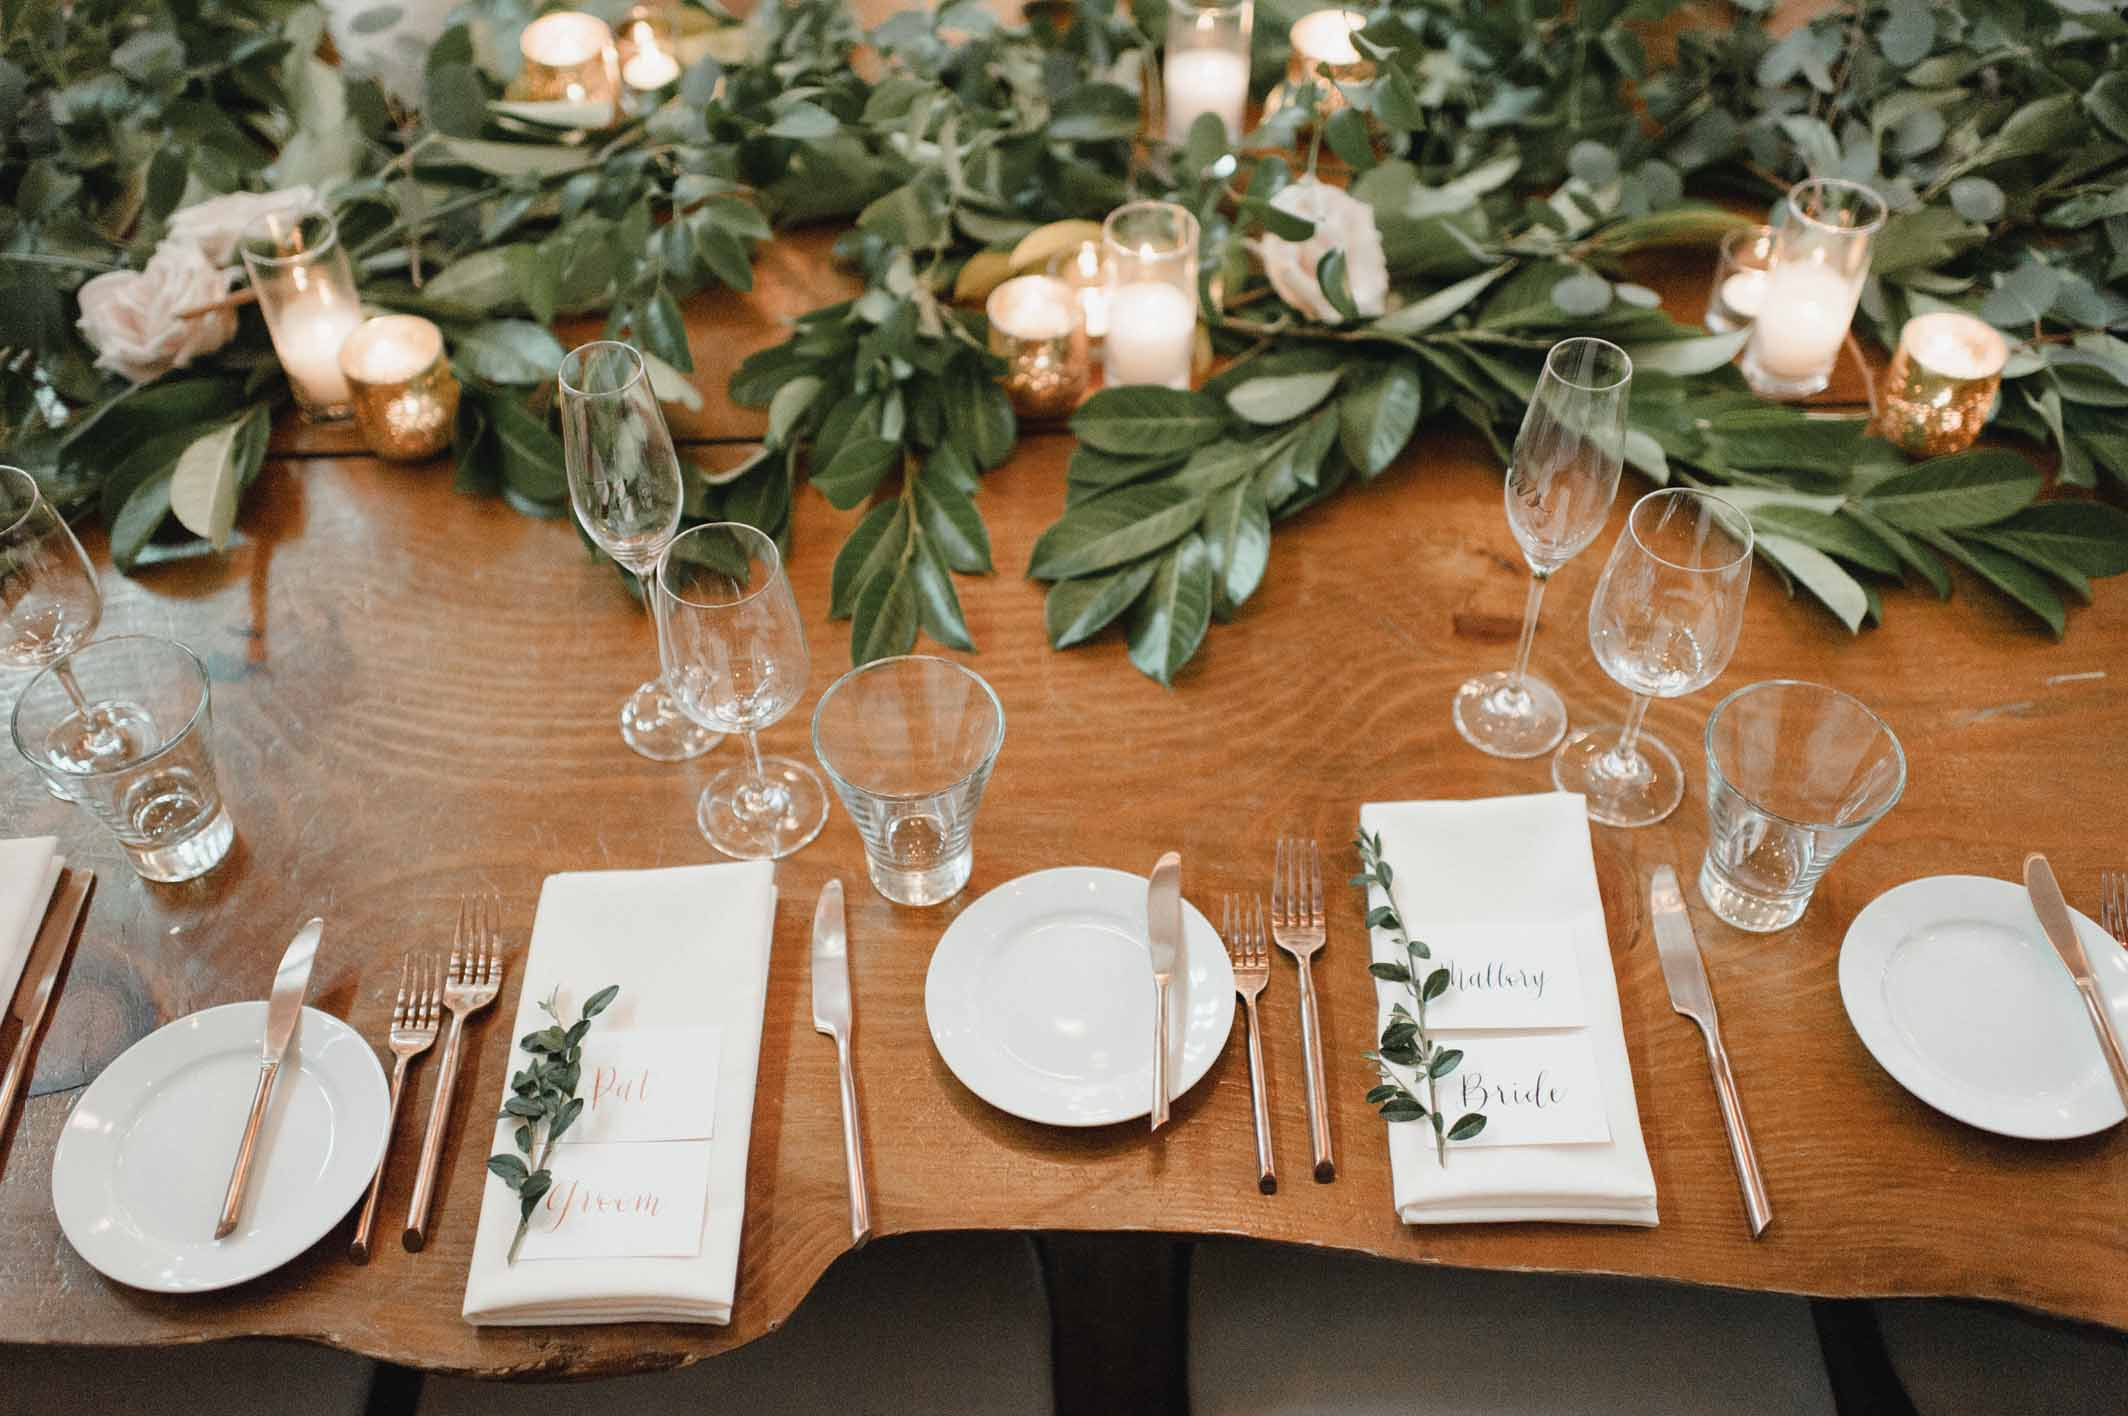 Wooden head table with greenery runner, cream napkins, greenery sprig at each place setting - Flora Nova Design Seattle